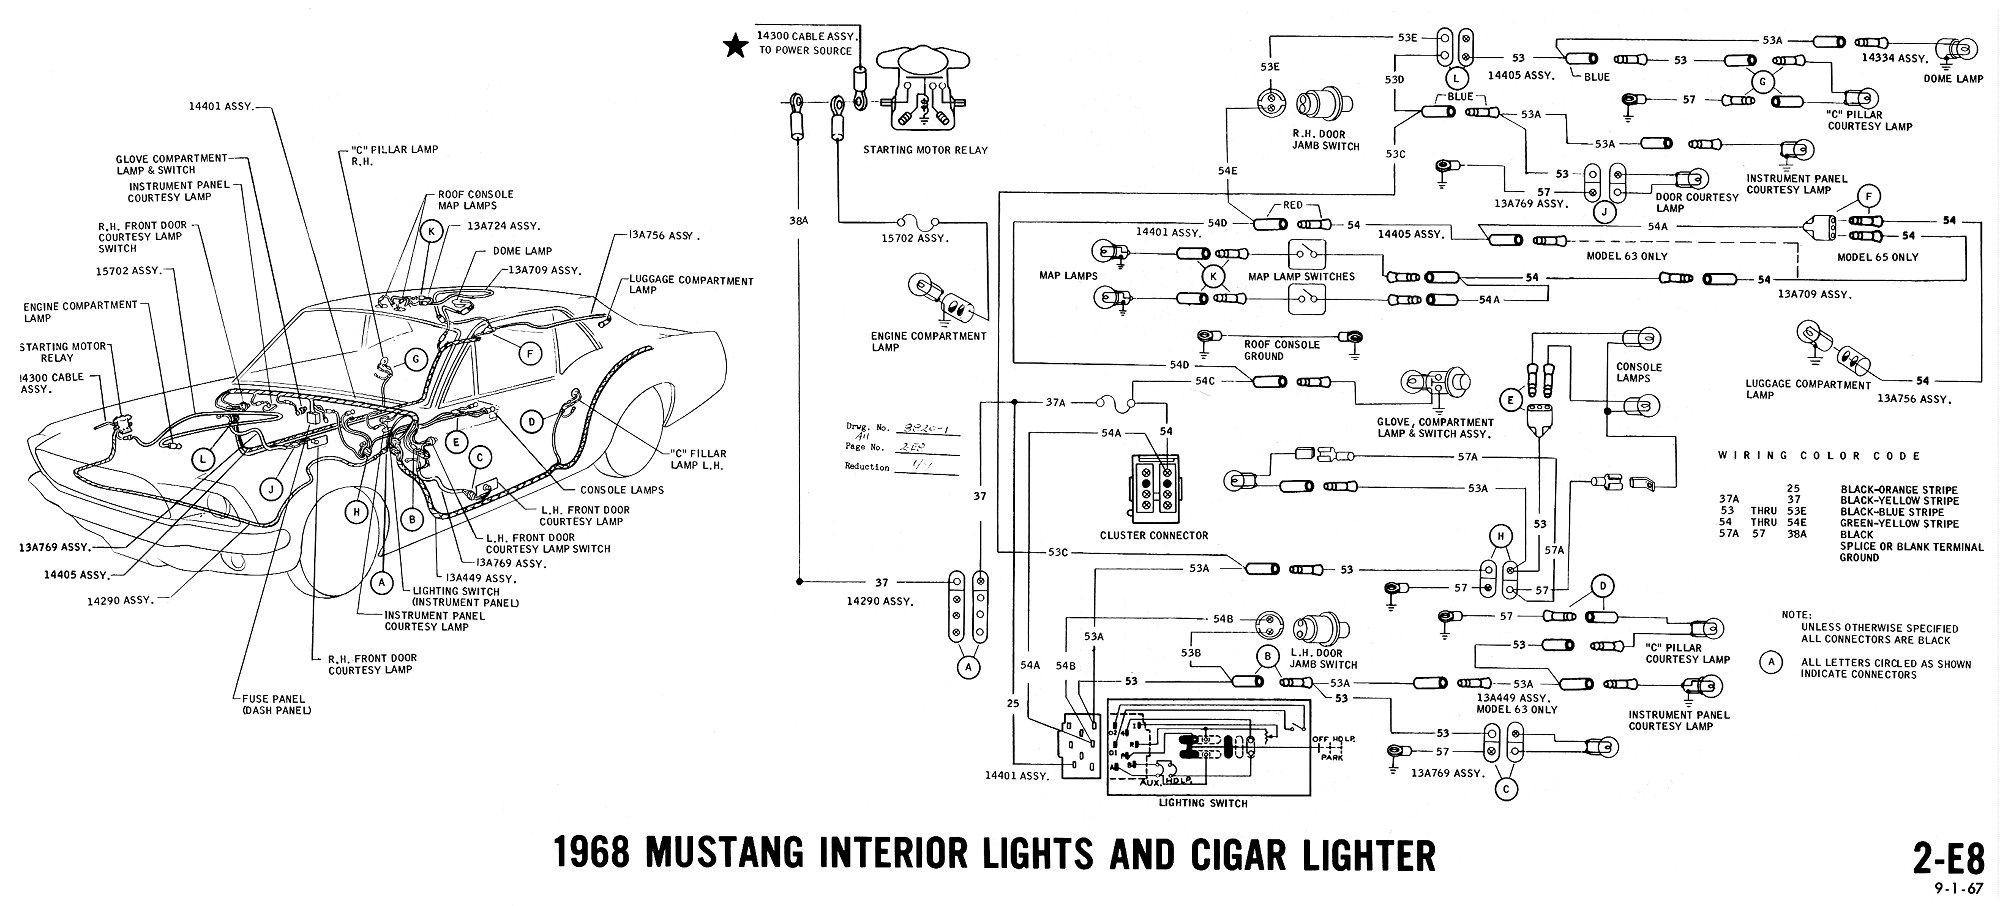 E8 66 mustang wiring diagram radio tape 66 mustang fuse diagram 1969 mustang wiring harness diagram at alyssarenee.co